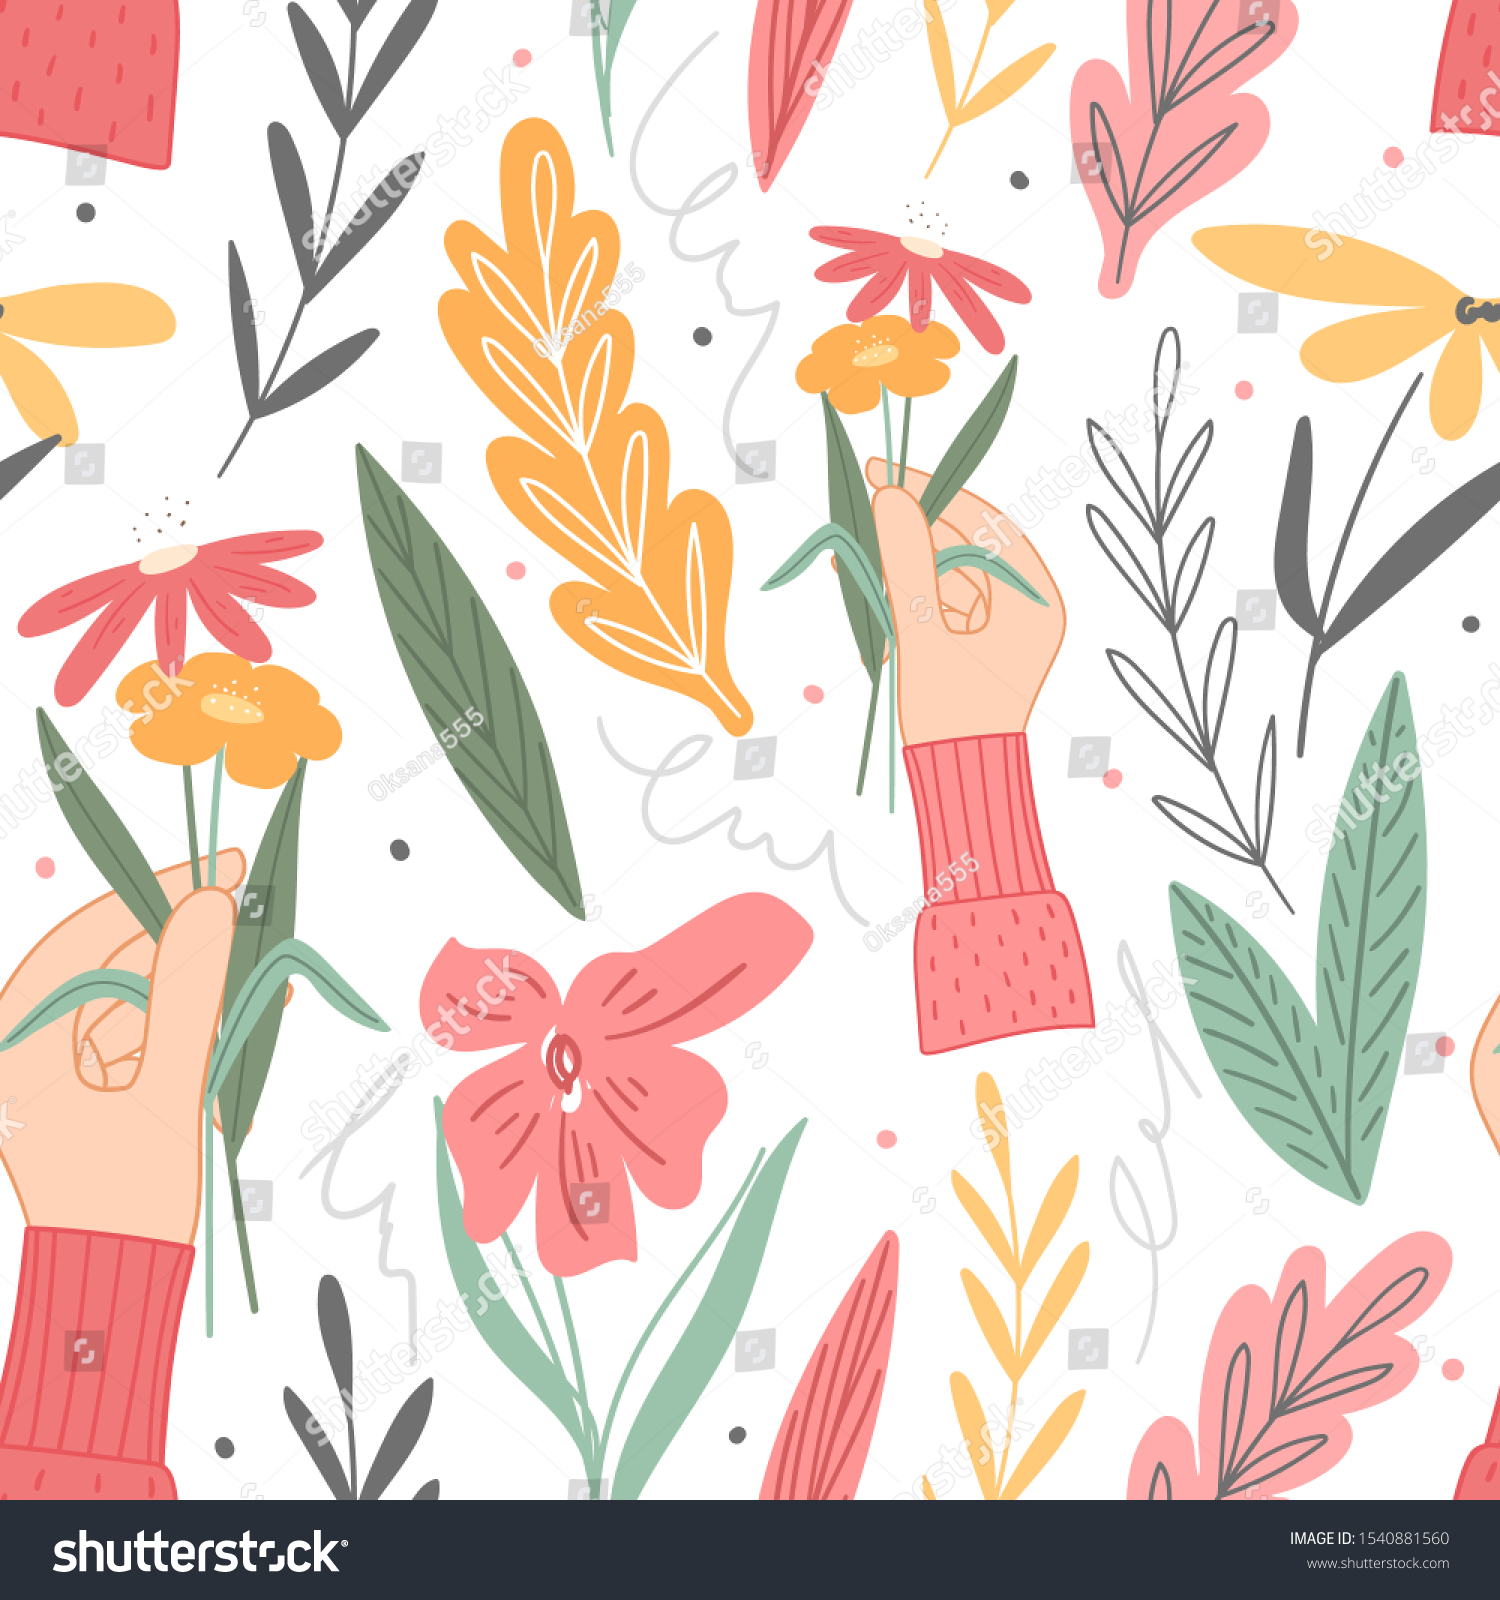 Hand Drawn Aesthetic Floral Seamless Pattern Royalty Free Stock